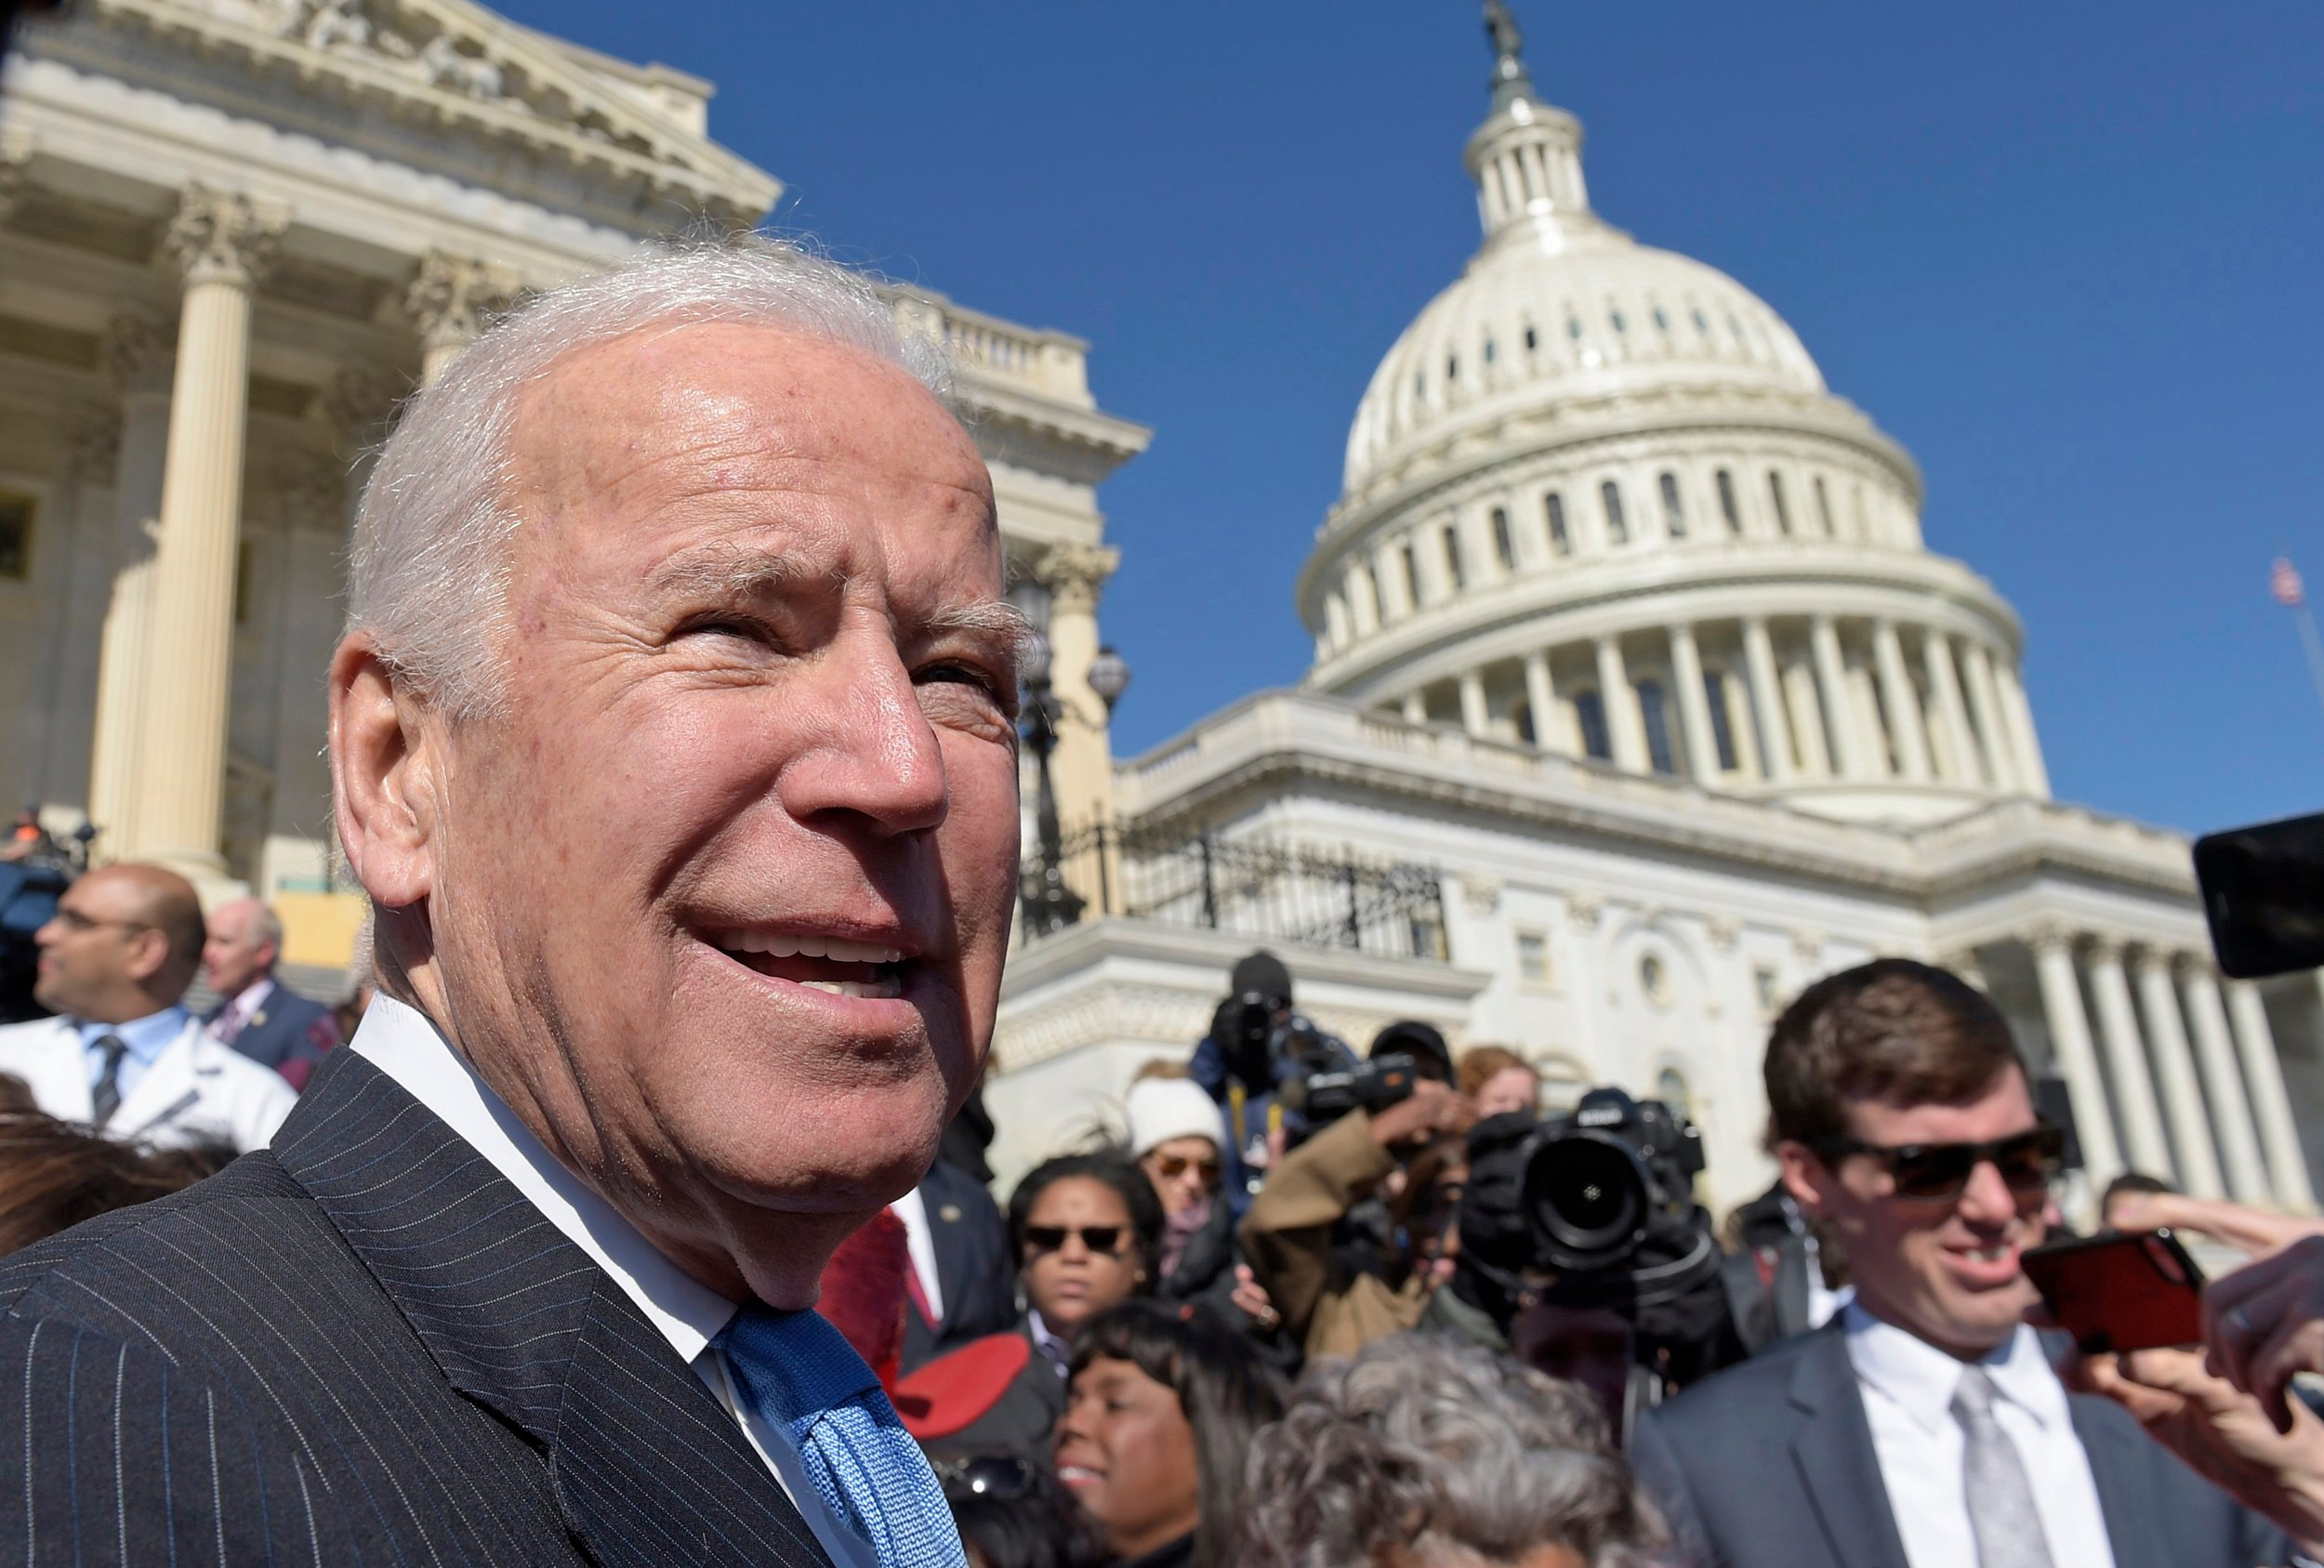 Biden administration talks about prospect of lifting anti-Russian sanctions